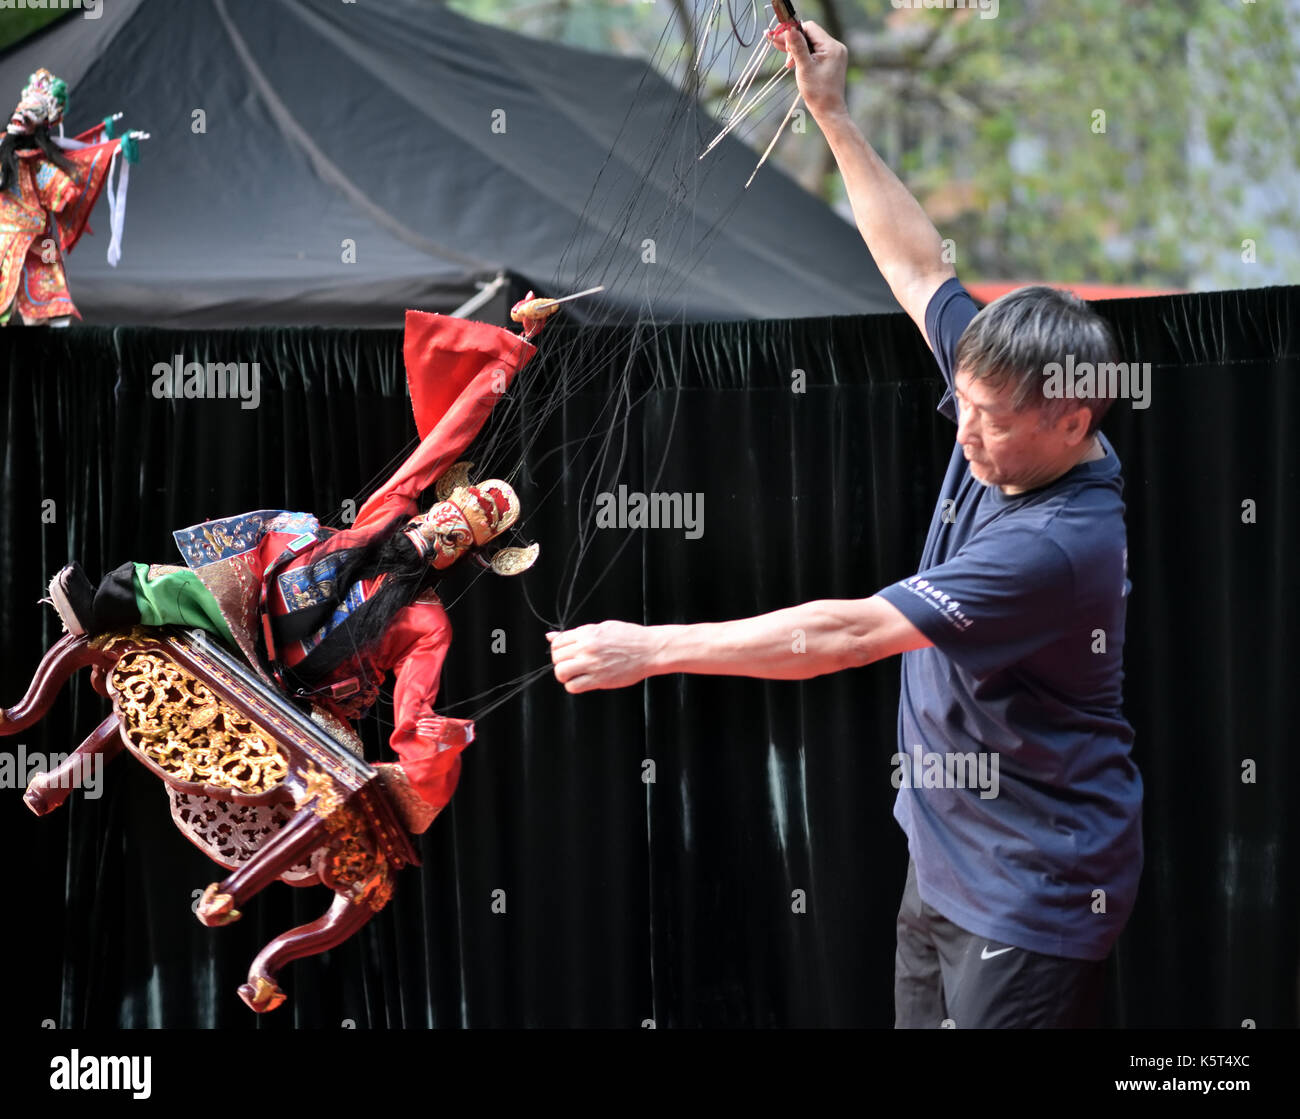 Traditional Chinese string puppet show performed outdoor for  public entertainment. - Stock Image